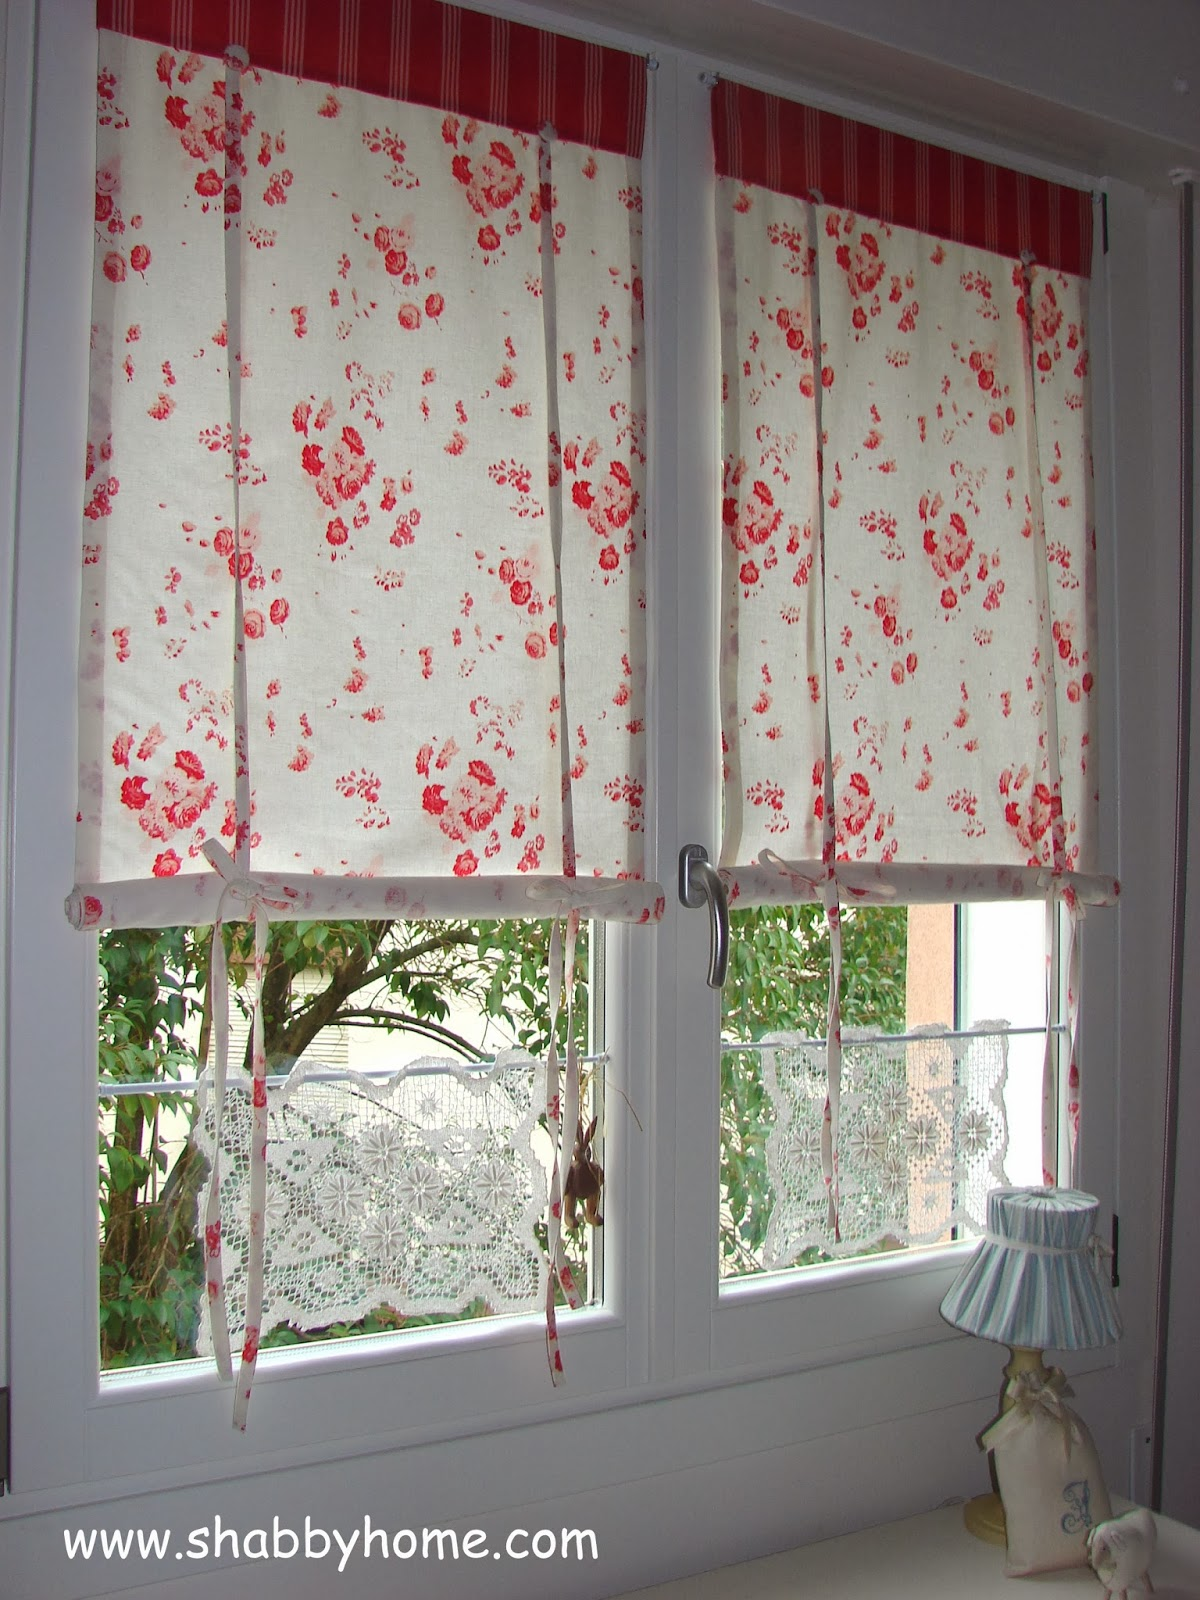 Shabby Home: Tutorial come realizzare delle tende Shabby Chic - Tutorial how to sew a Shabby ...